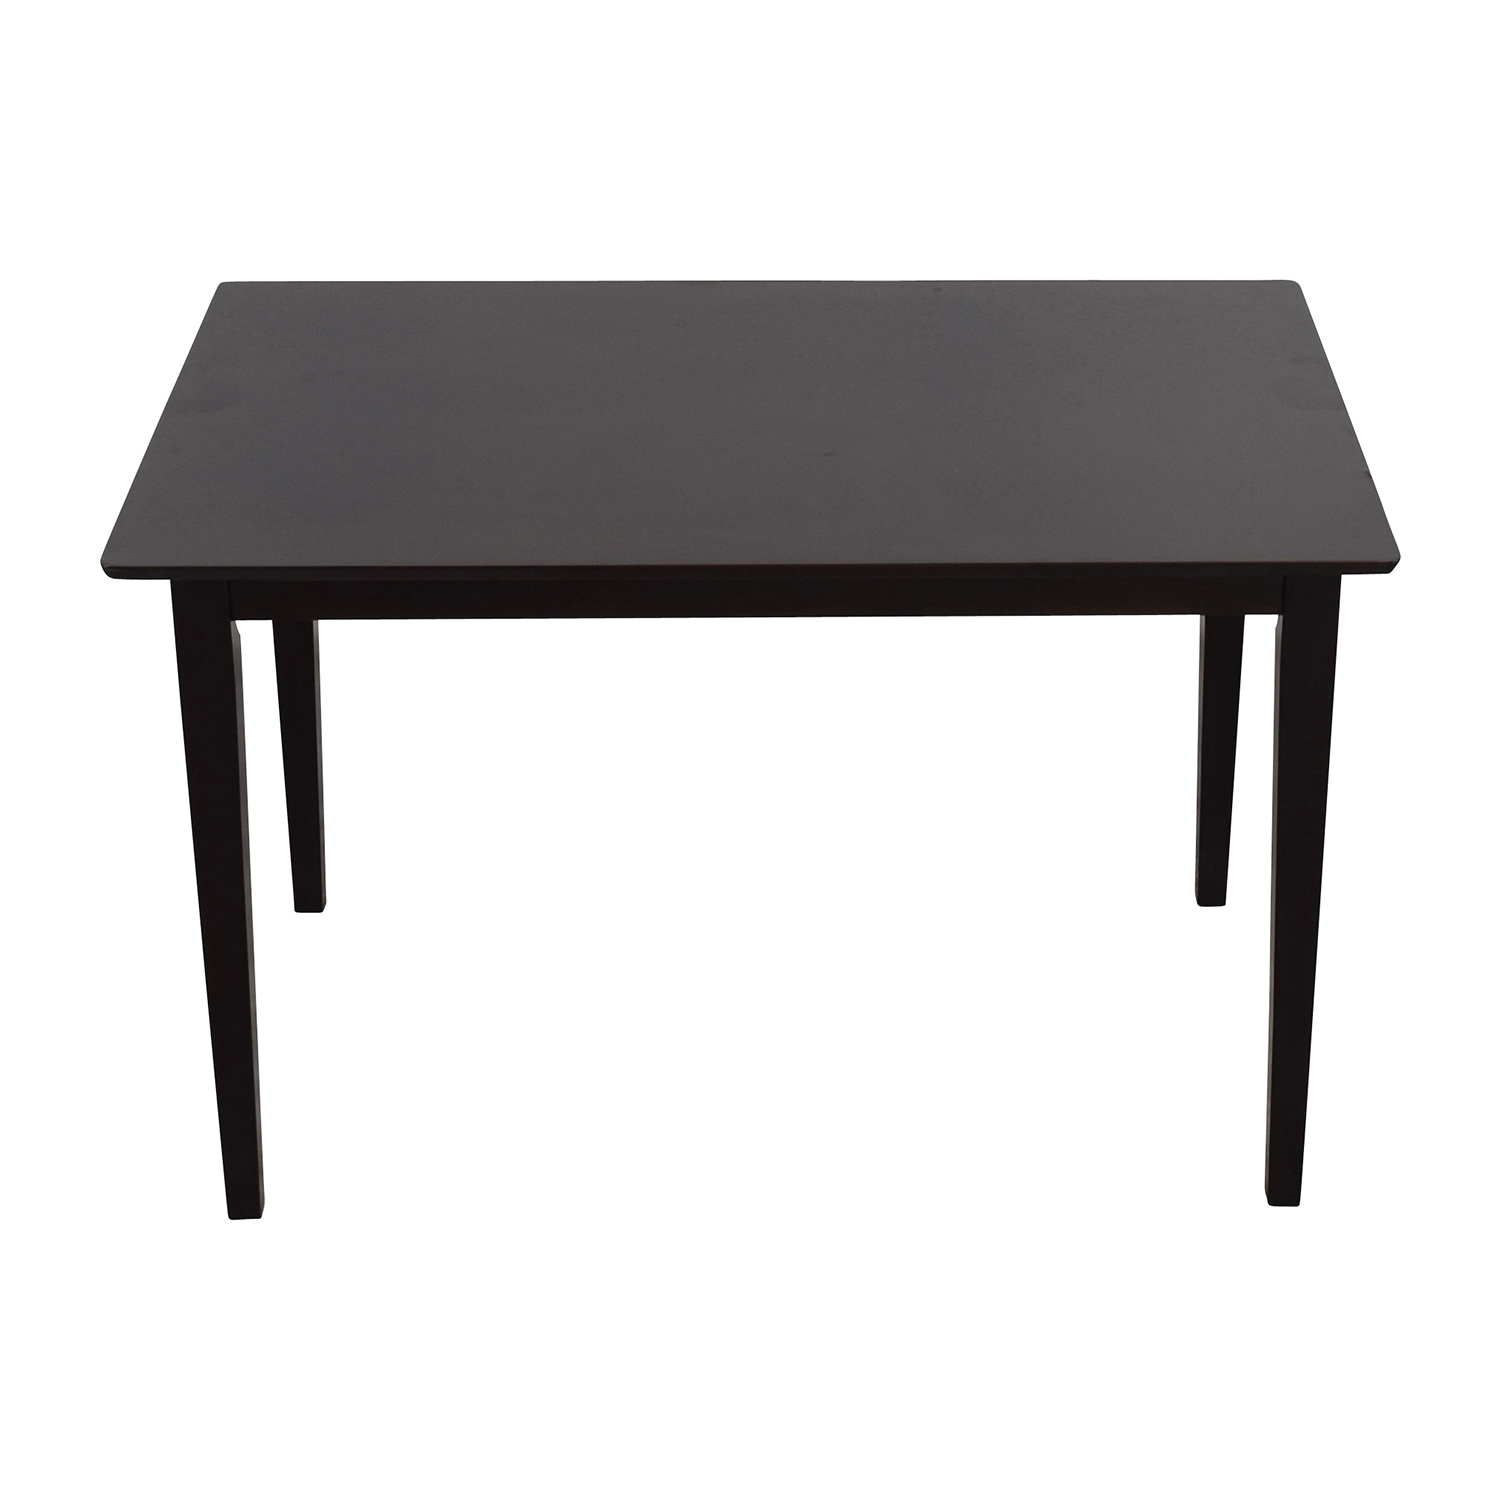 shop Coaster Home Furnishings Coaster Home Hyde Rectangular Casual Dining Leg Table online